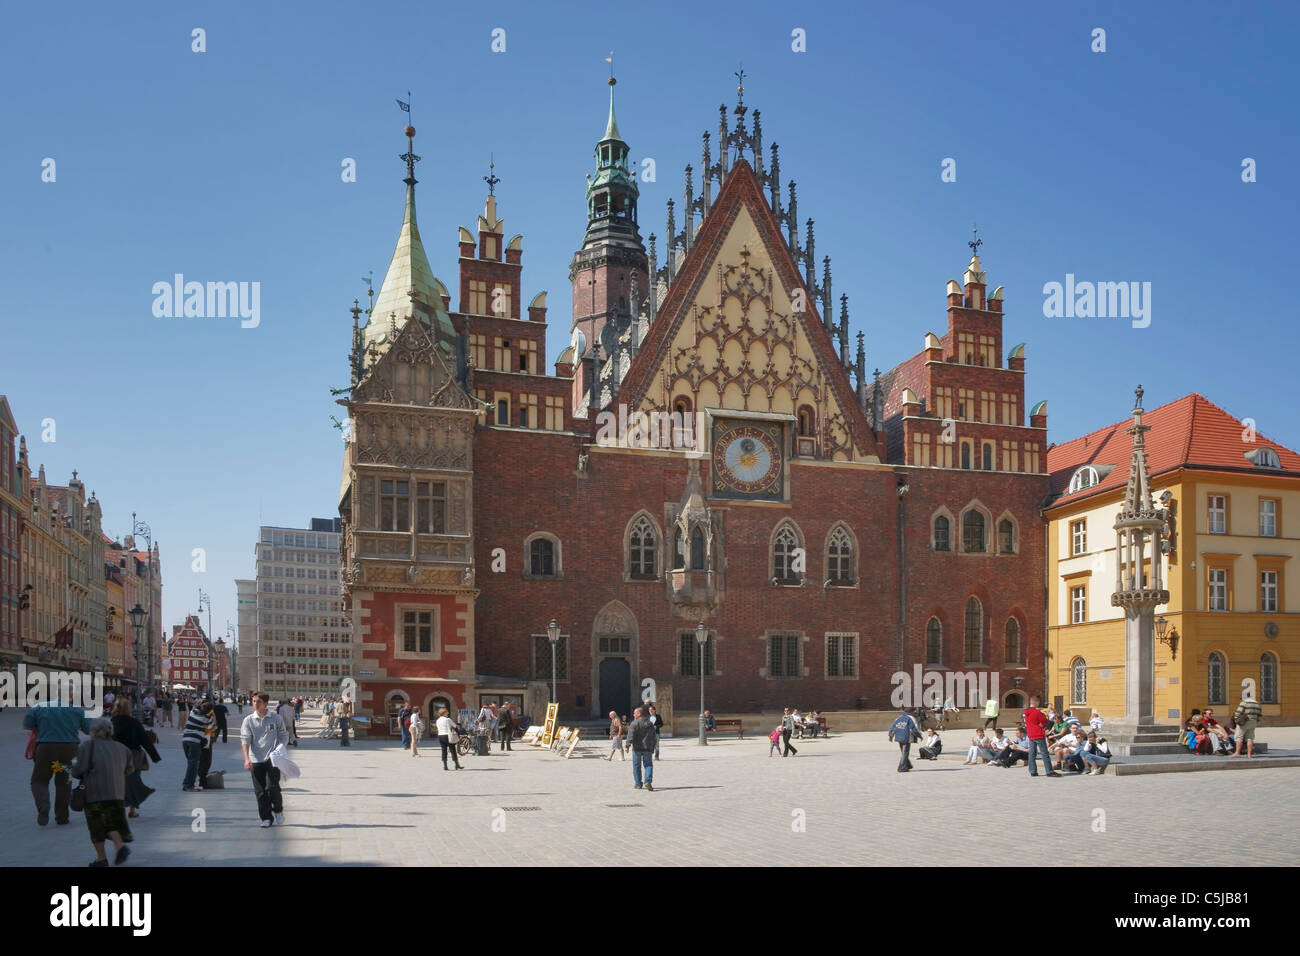 Rathaus Breslau | Wroclaw guildhall - Stock Image